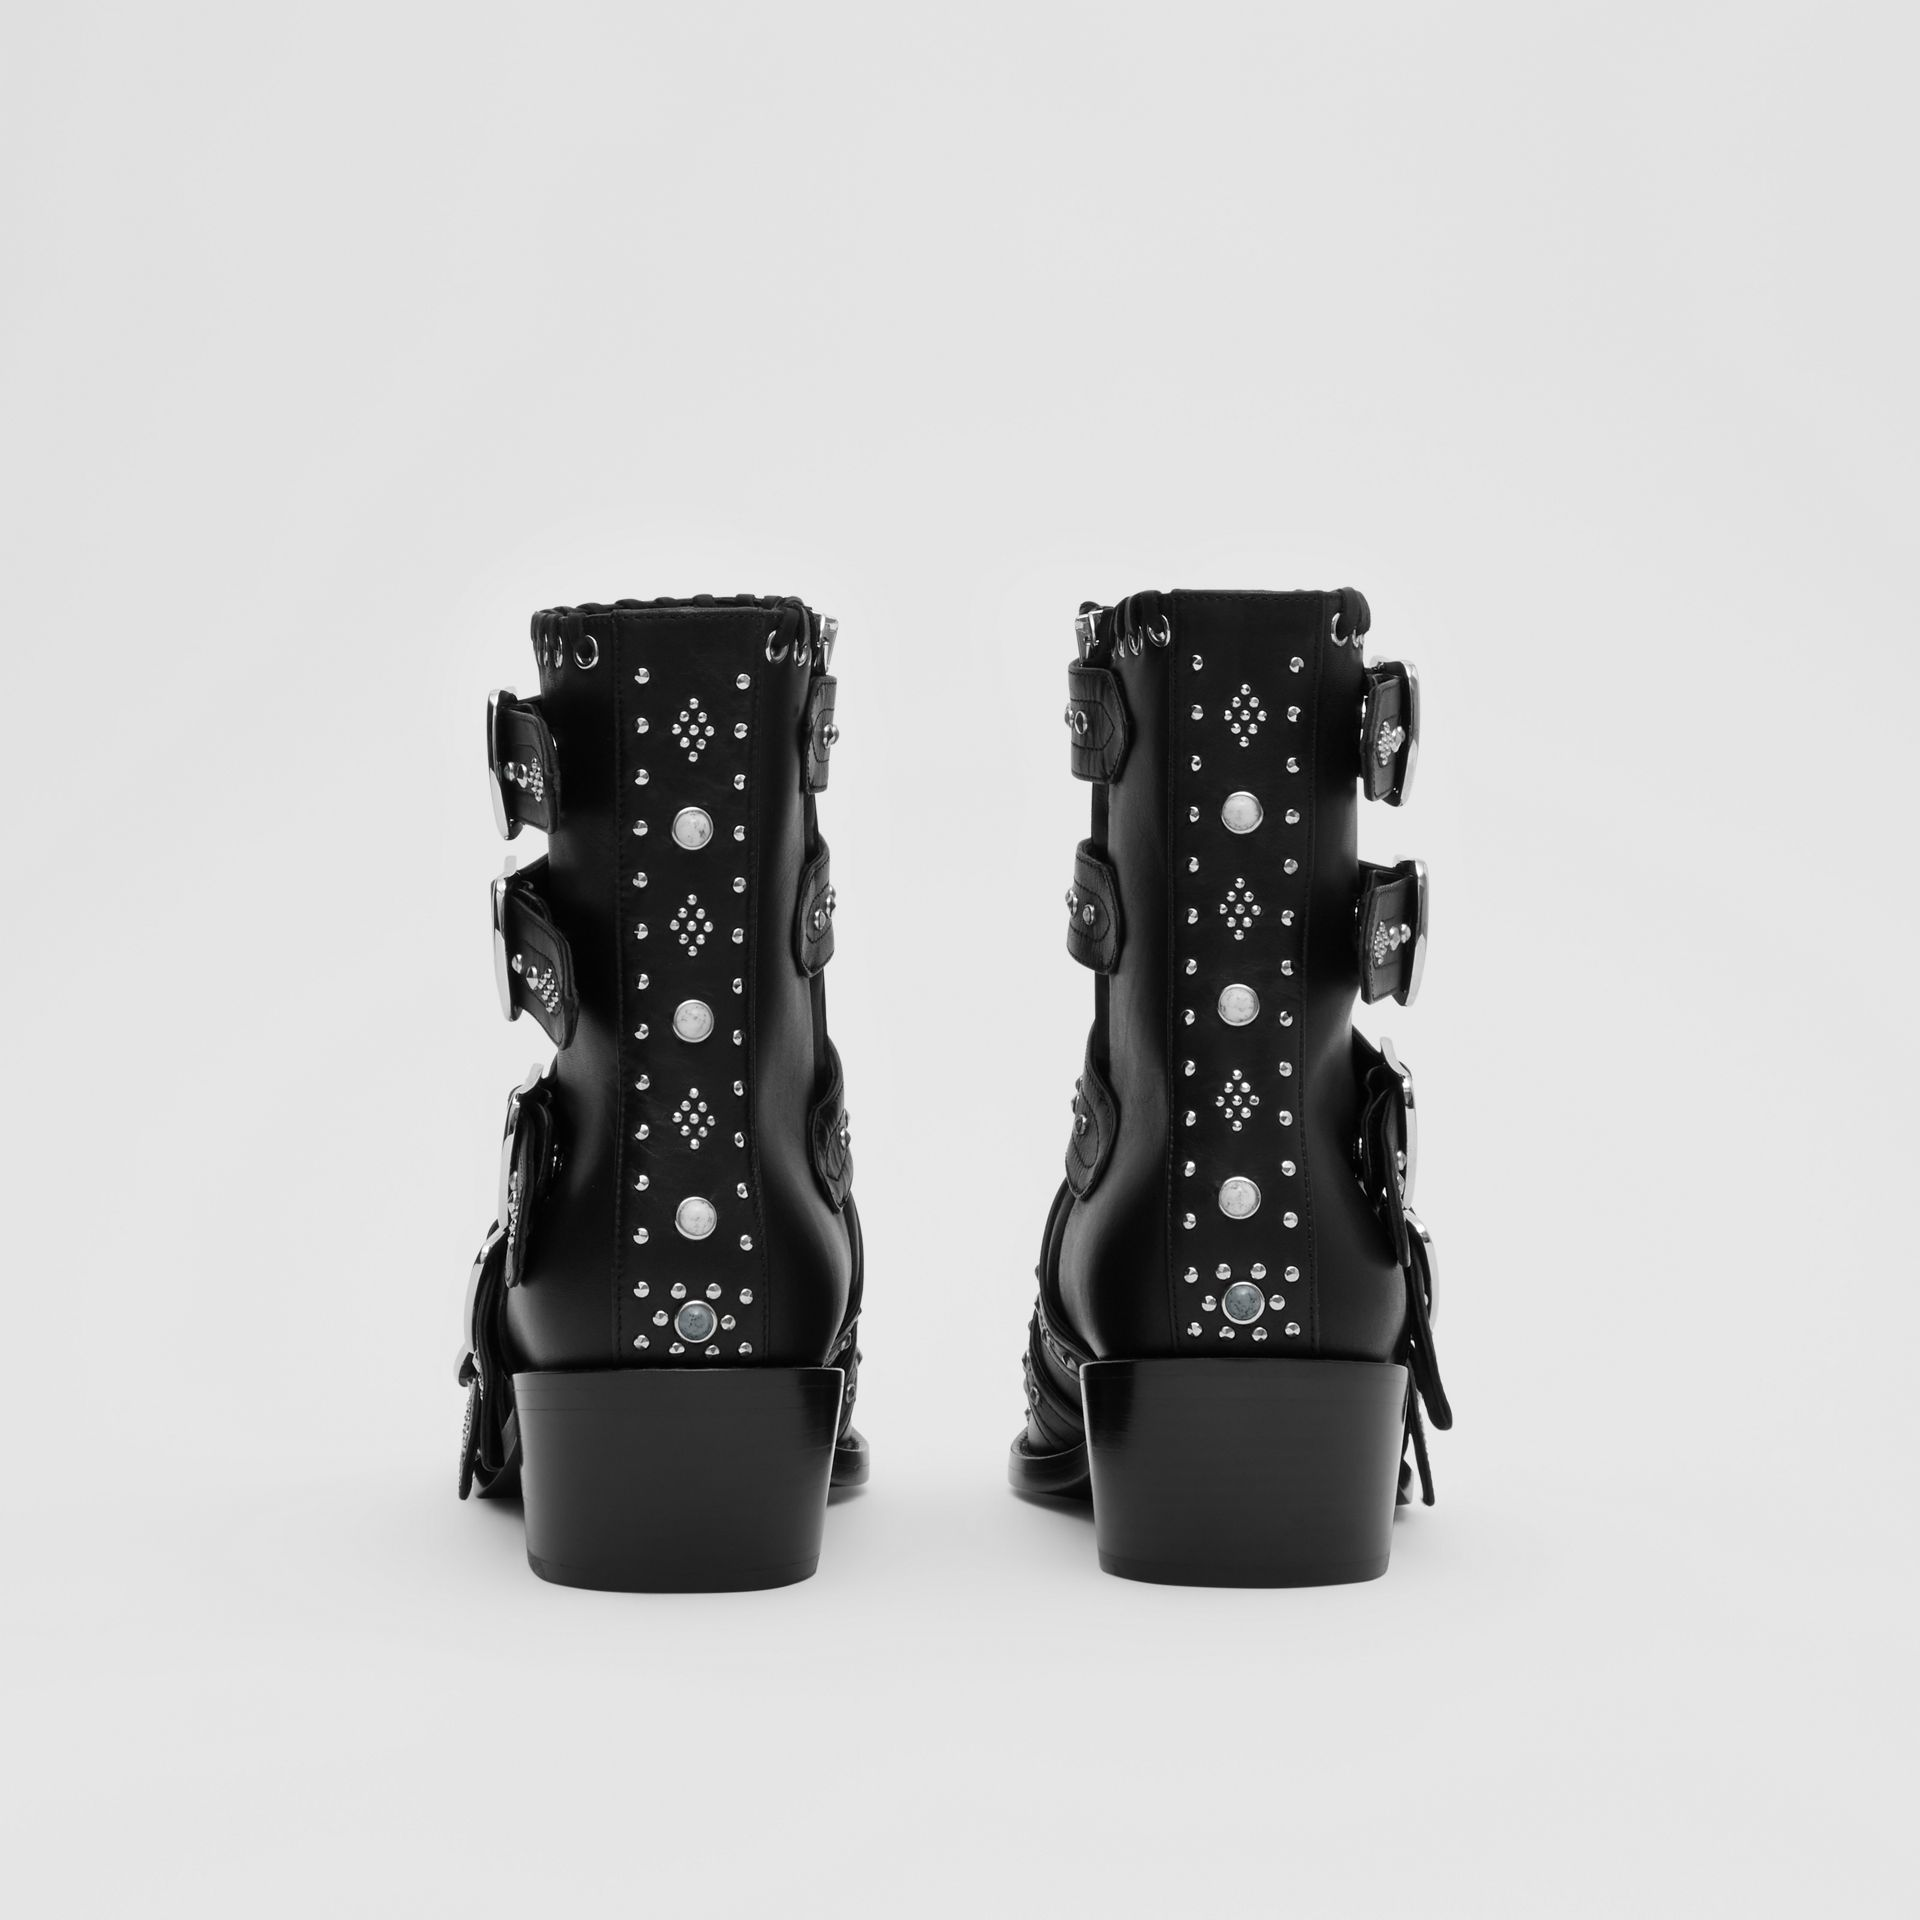 Buckled Embellished Leather Peep-toe Ankle Boots in Black - Women | Burberry - gallery image 4